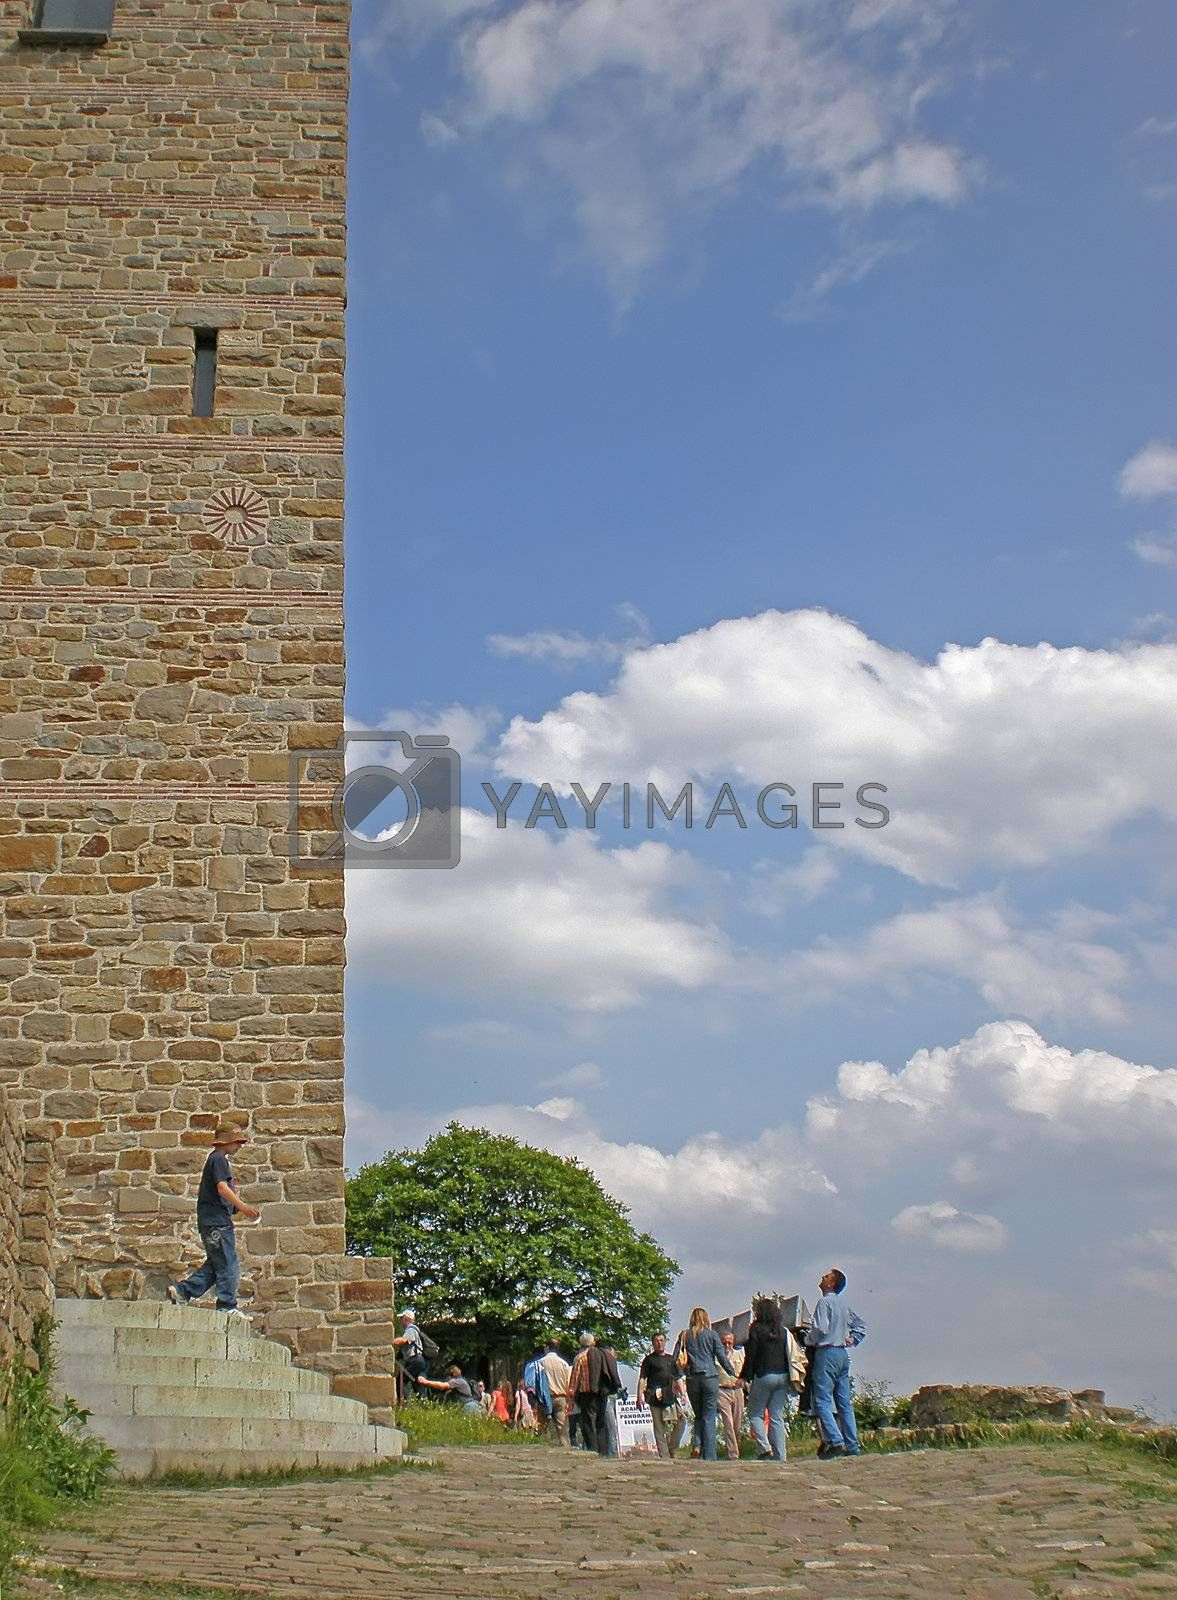 Royalty free image of church in Tsarevets fortress by Dessie_bg